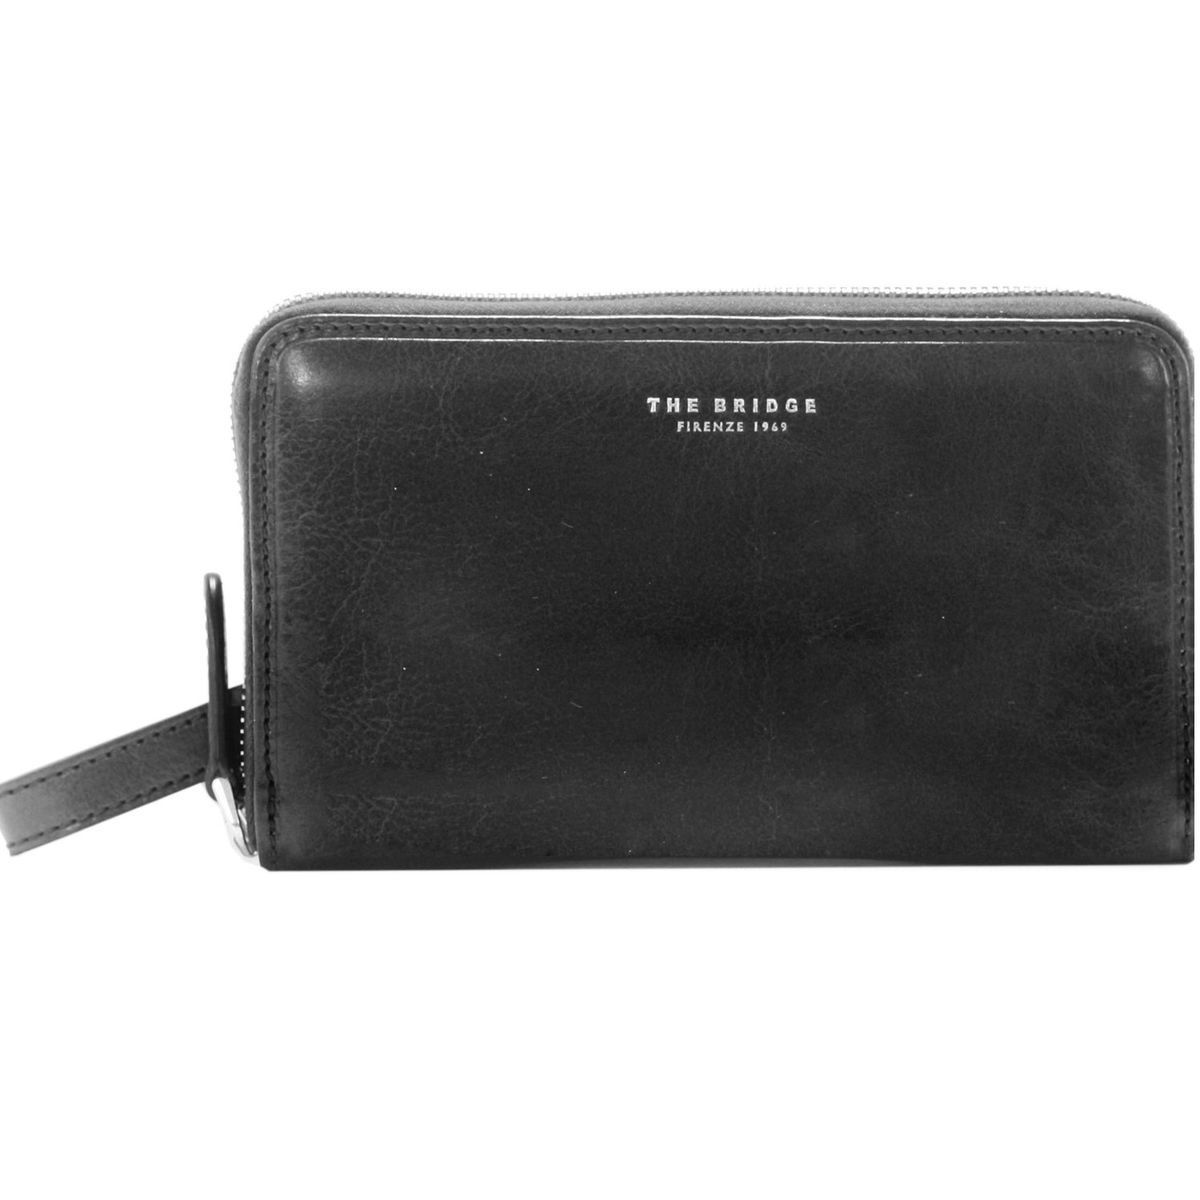 The Bridge Jade Clutch Tasche Leder 41 cm, nero